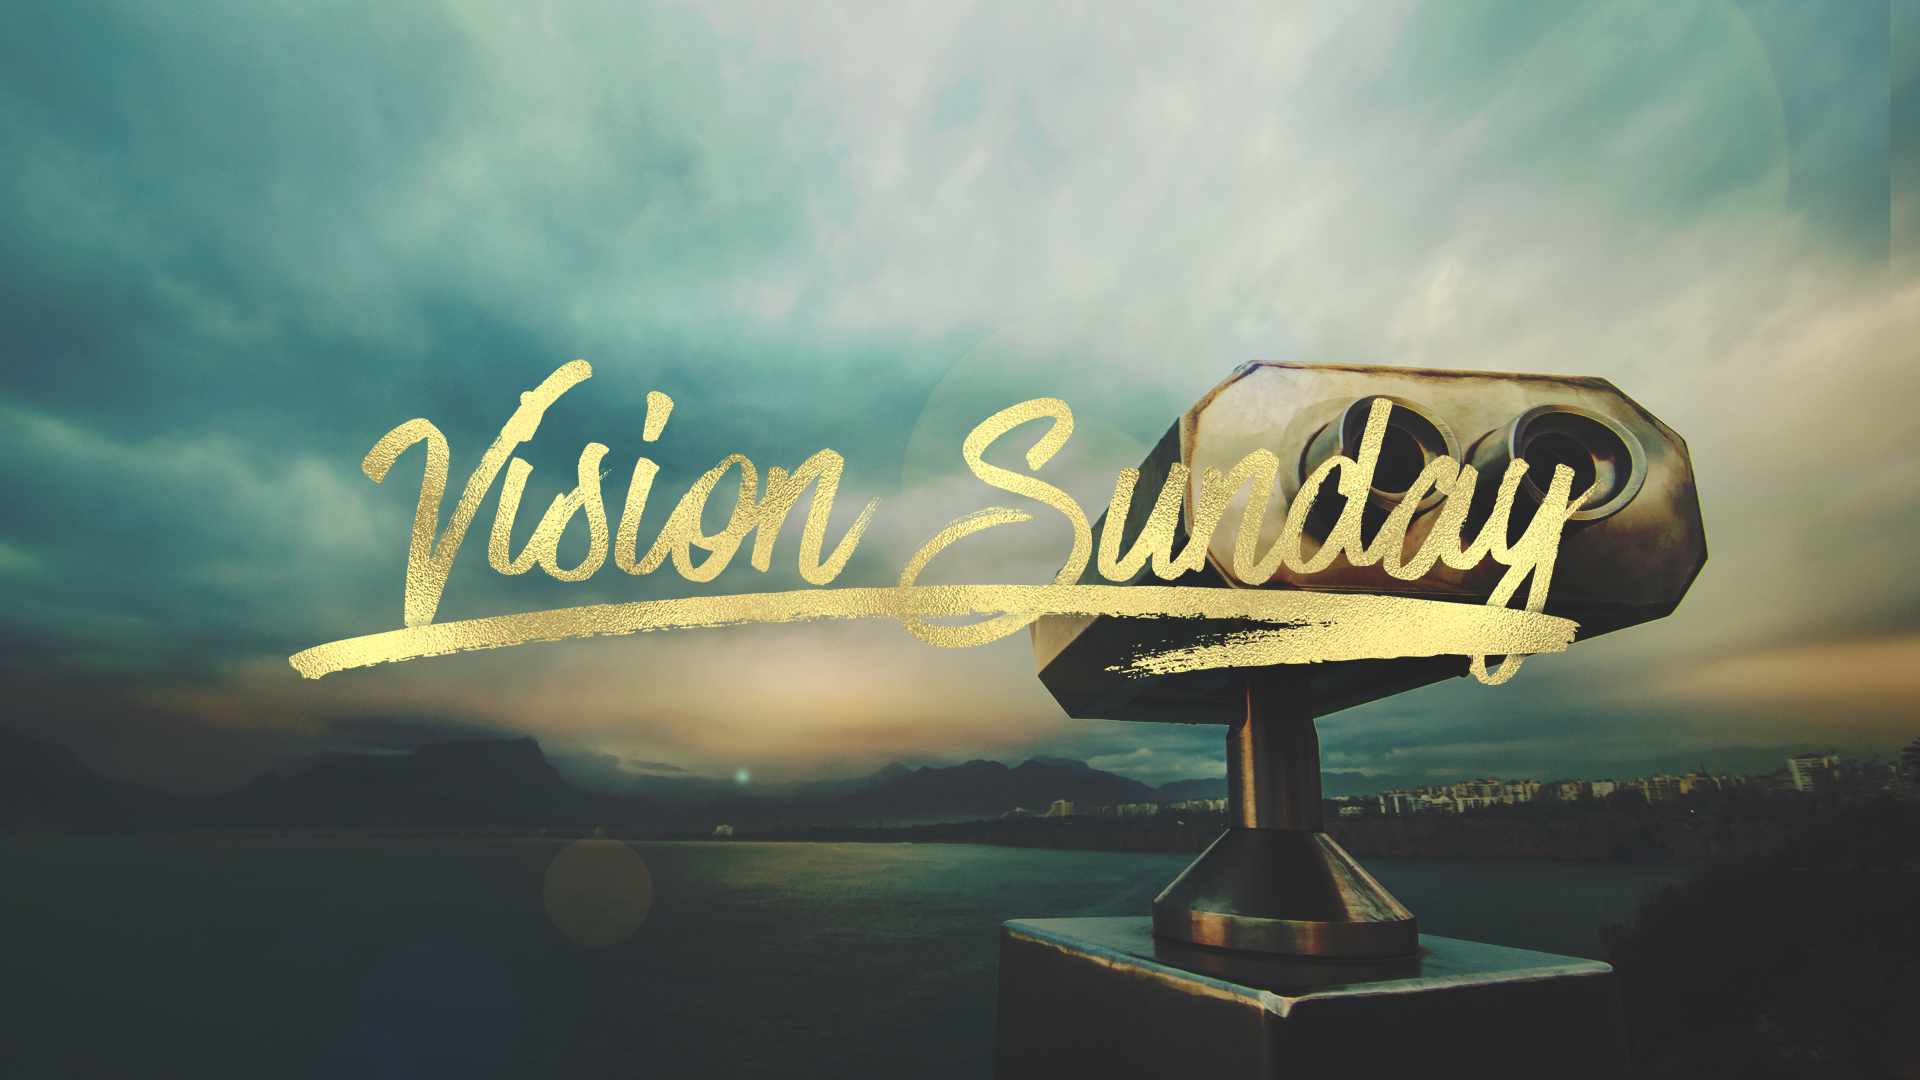 vision_sunday-title-1-Wide 16x9.jpg